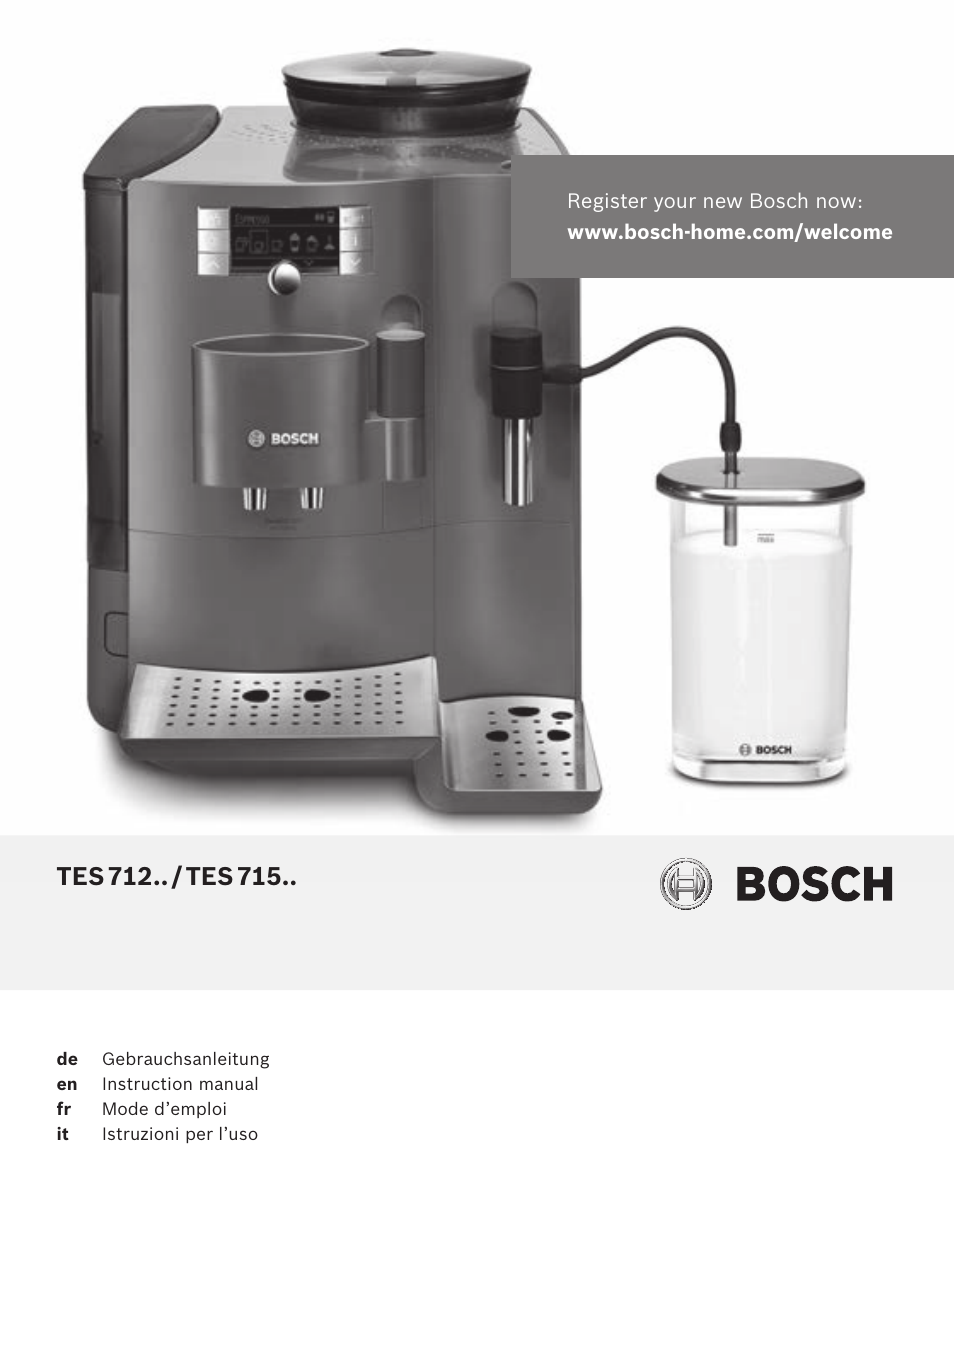 bosch tes71251de verobar aromapro 100 kaffeevollautomat silber user manual 116 pages. Black Bedroom Furniture Sets. Home Design Ideas